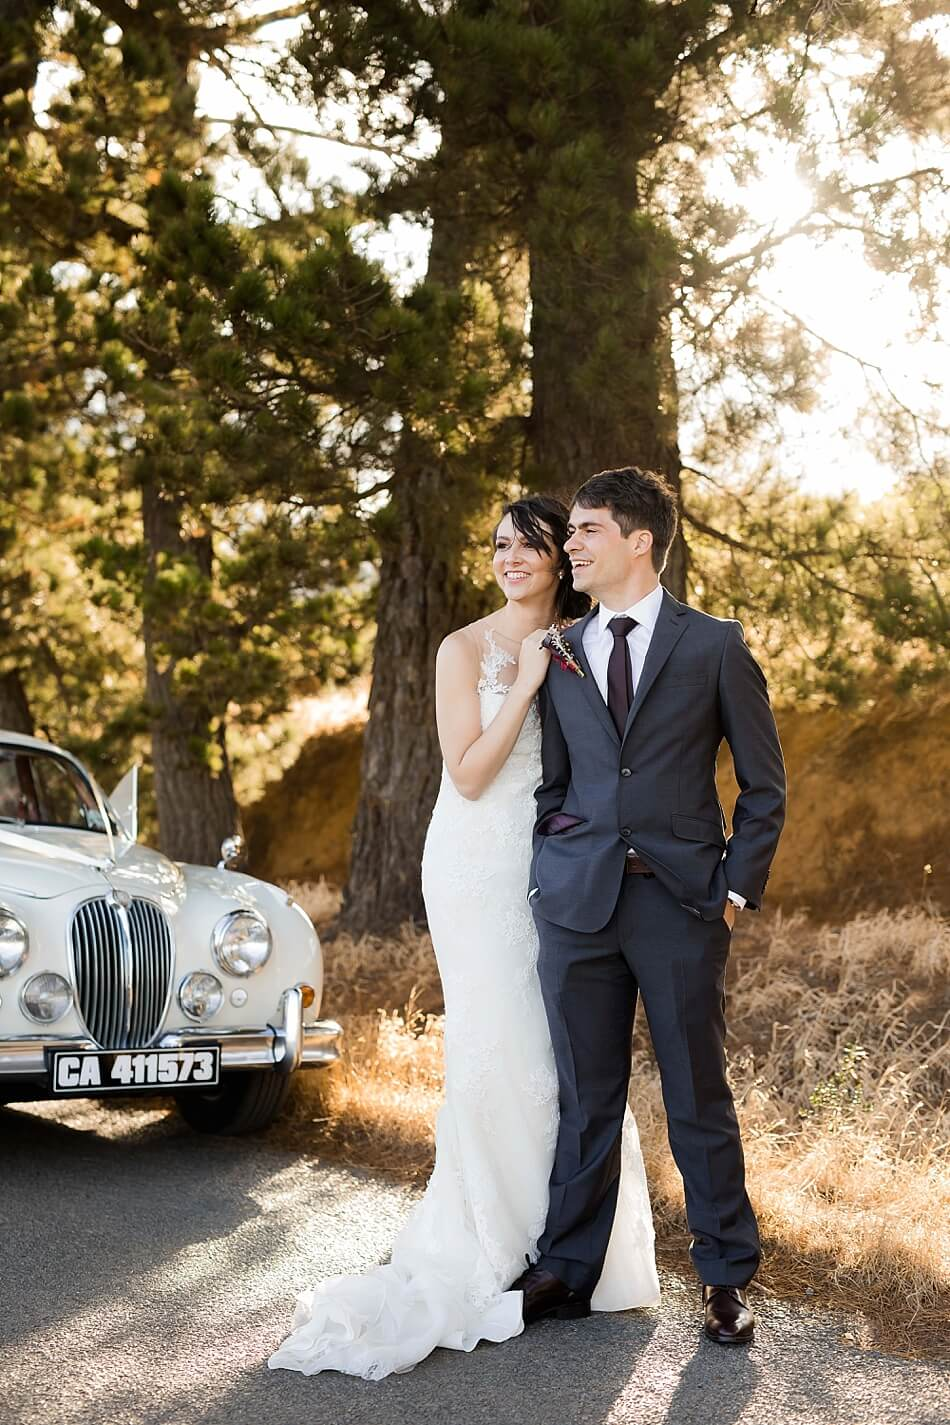 nikki-meyer_landtscap_stellenbosch_wedding_photographer_082